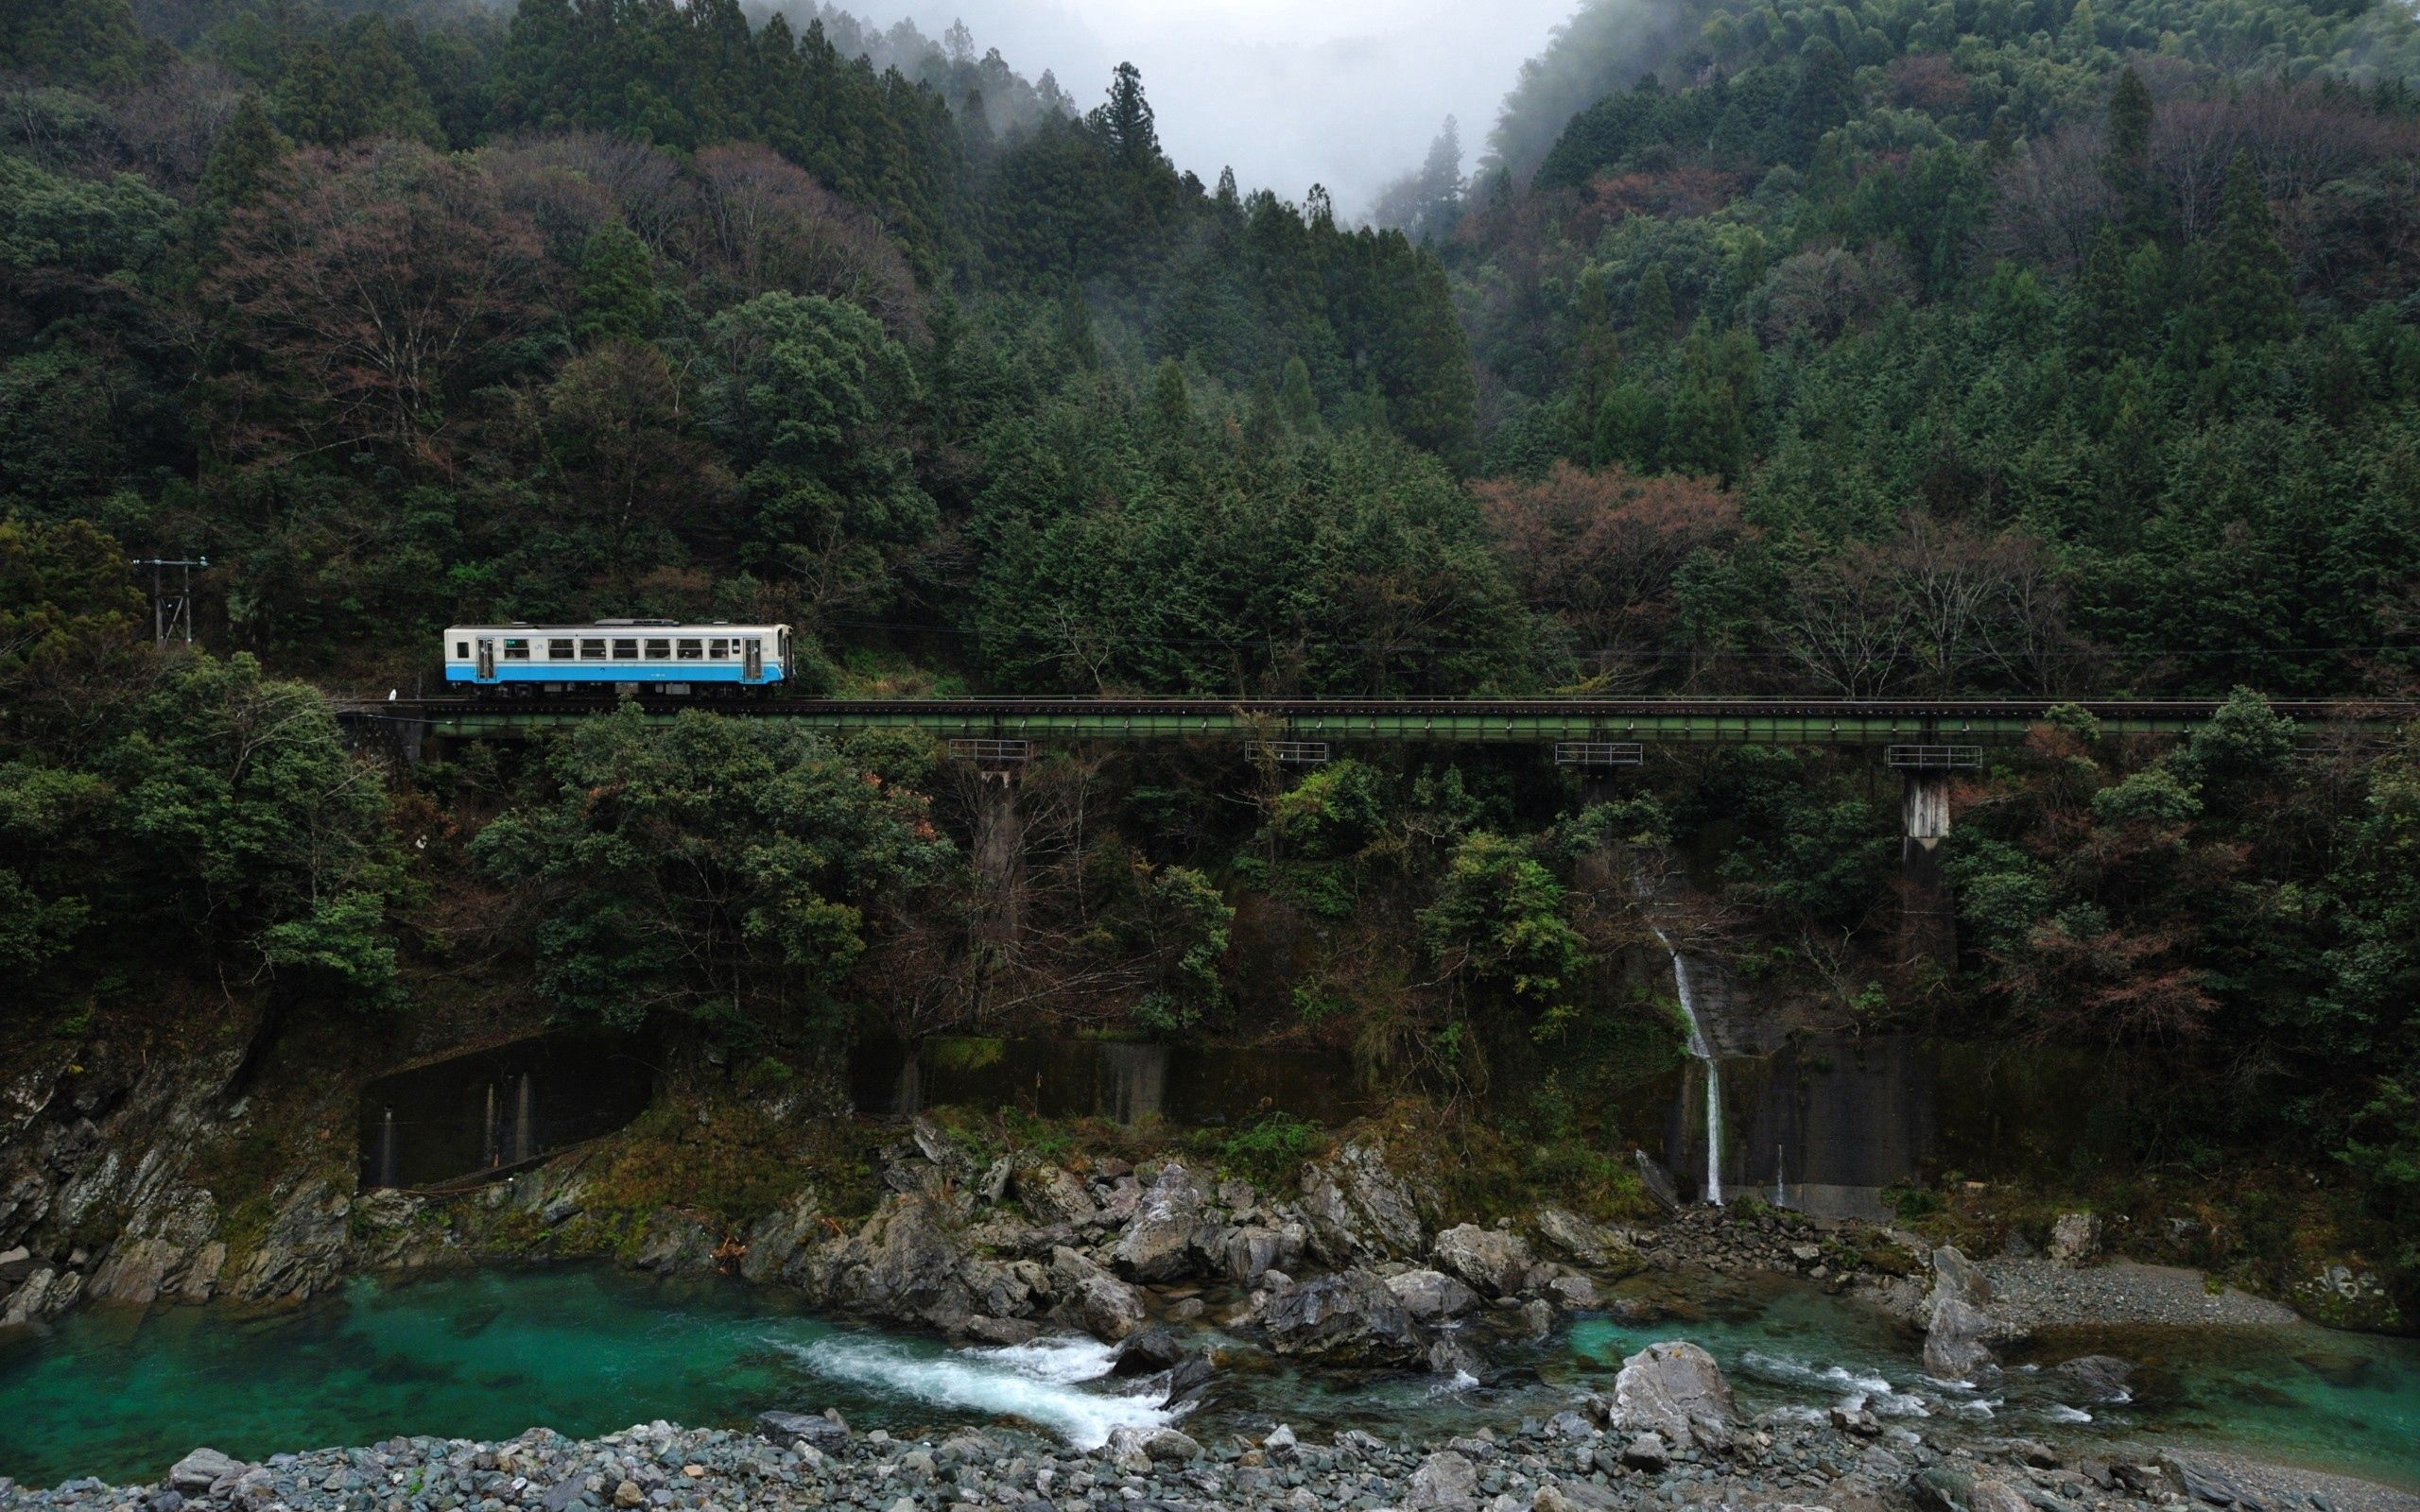 95864 download wallpaper Nature, Bridge, Railway, Trees, Rivers, Stones screensavers and pictures for free